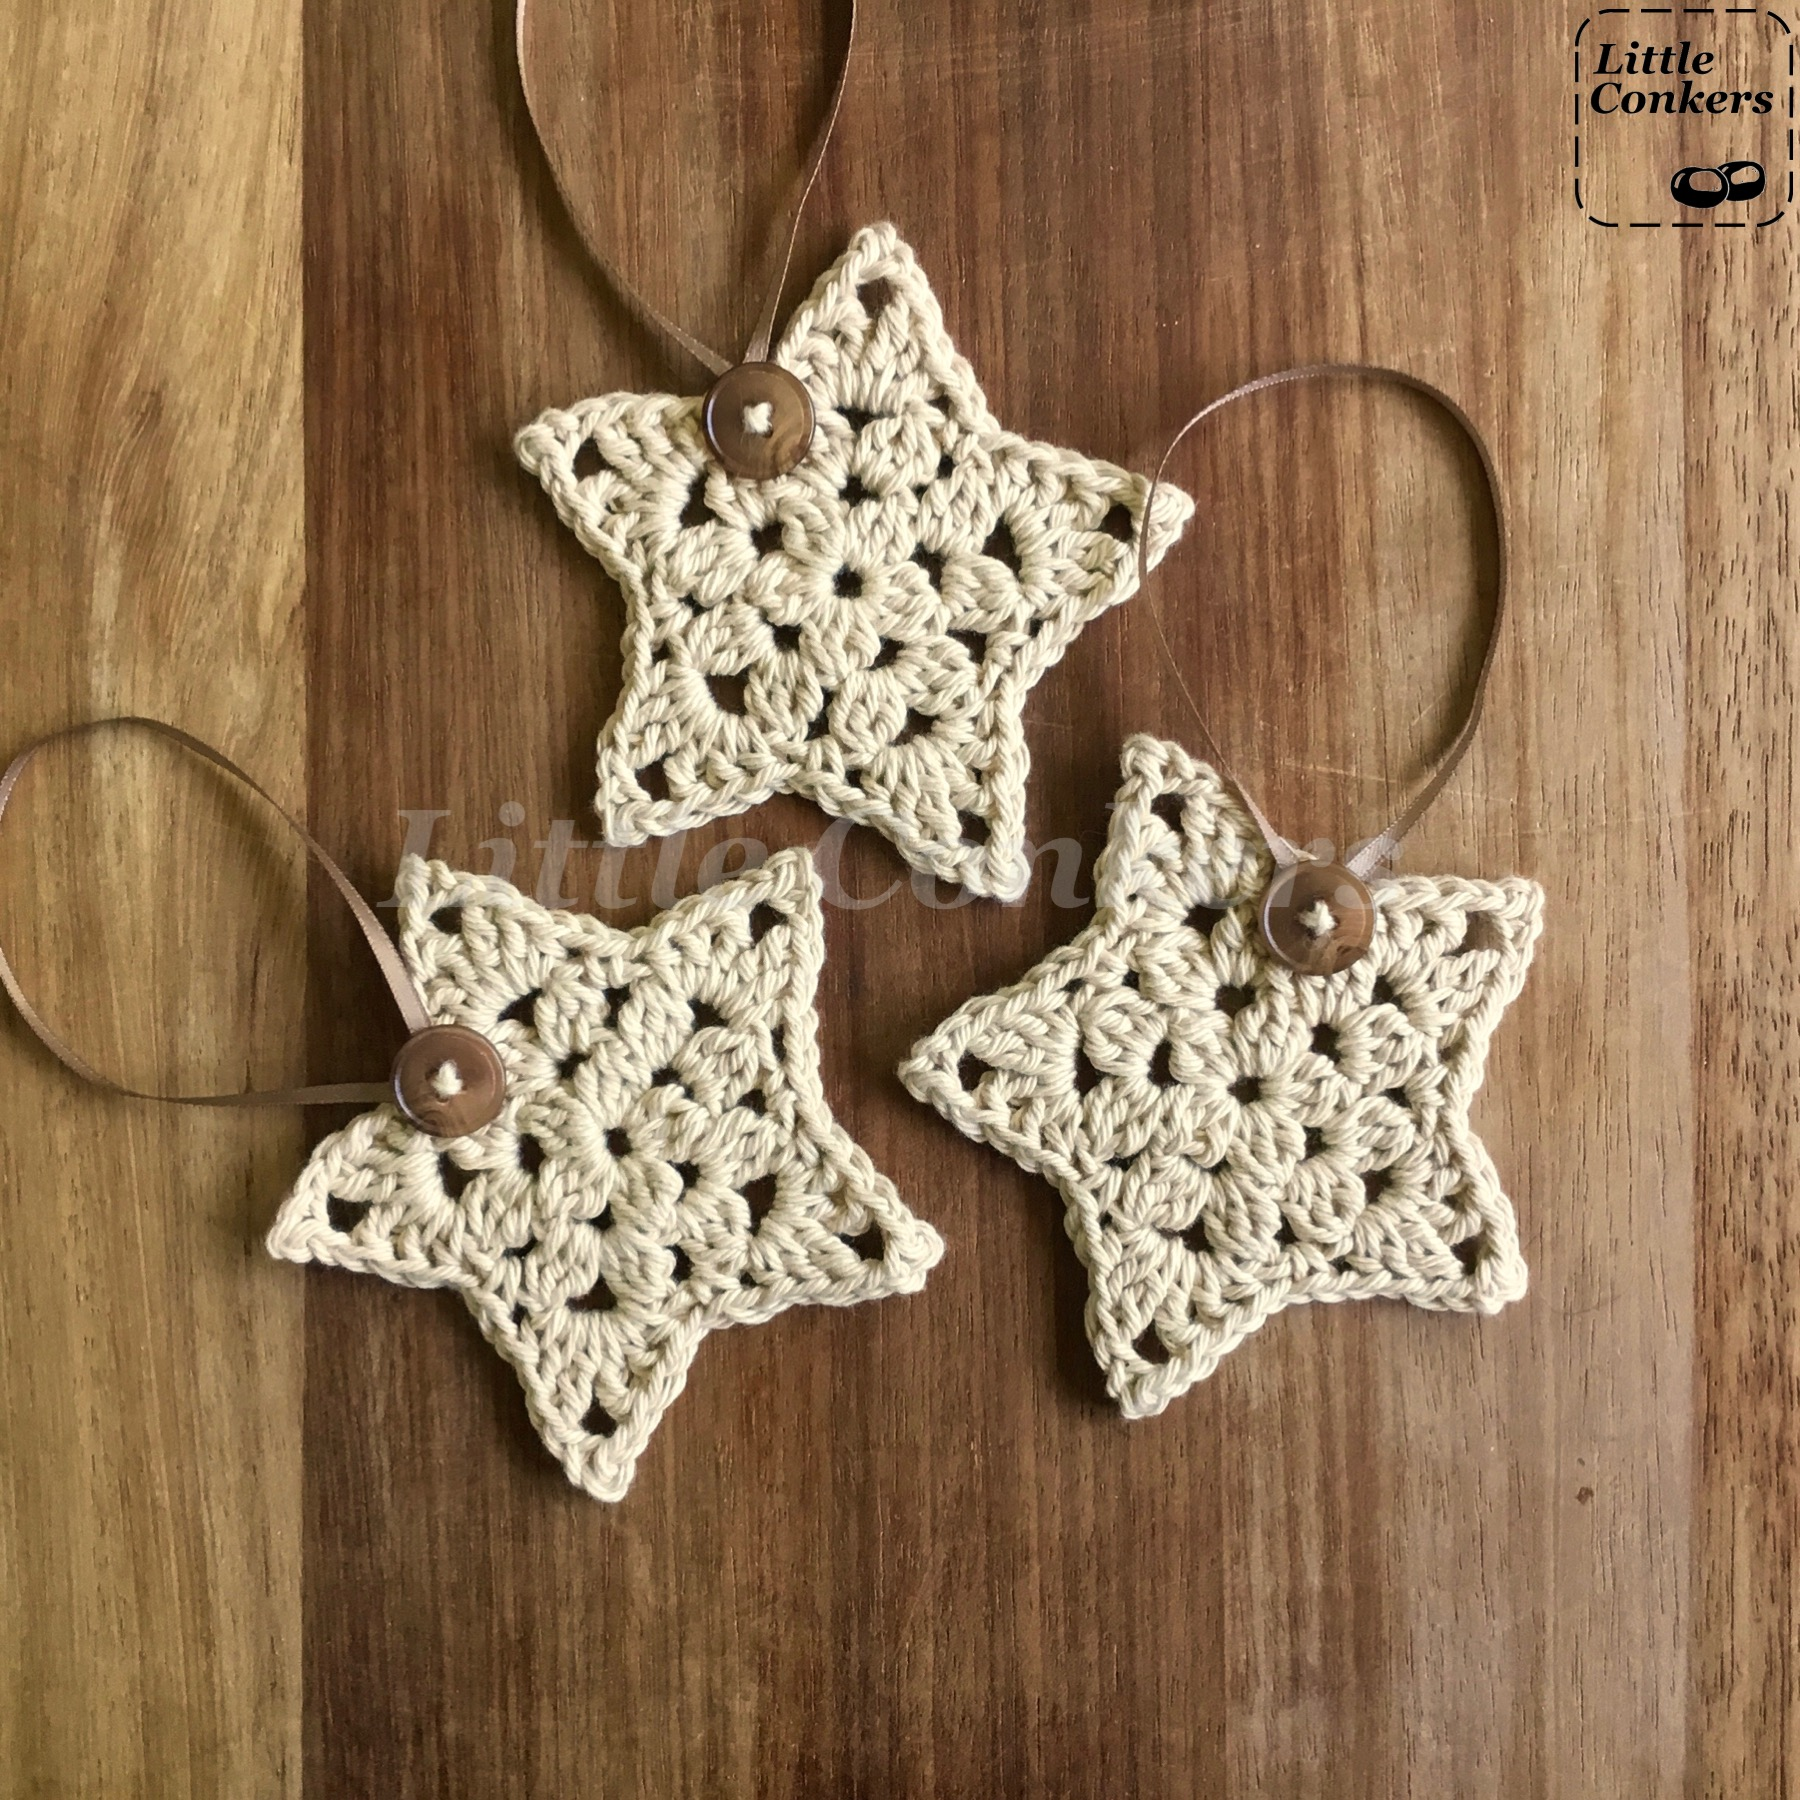 Hanging Star Ornaments